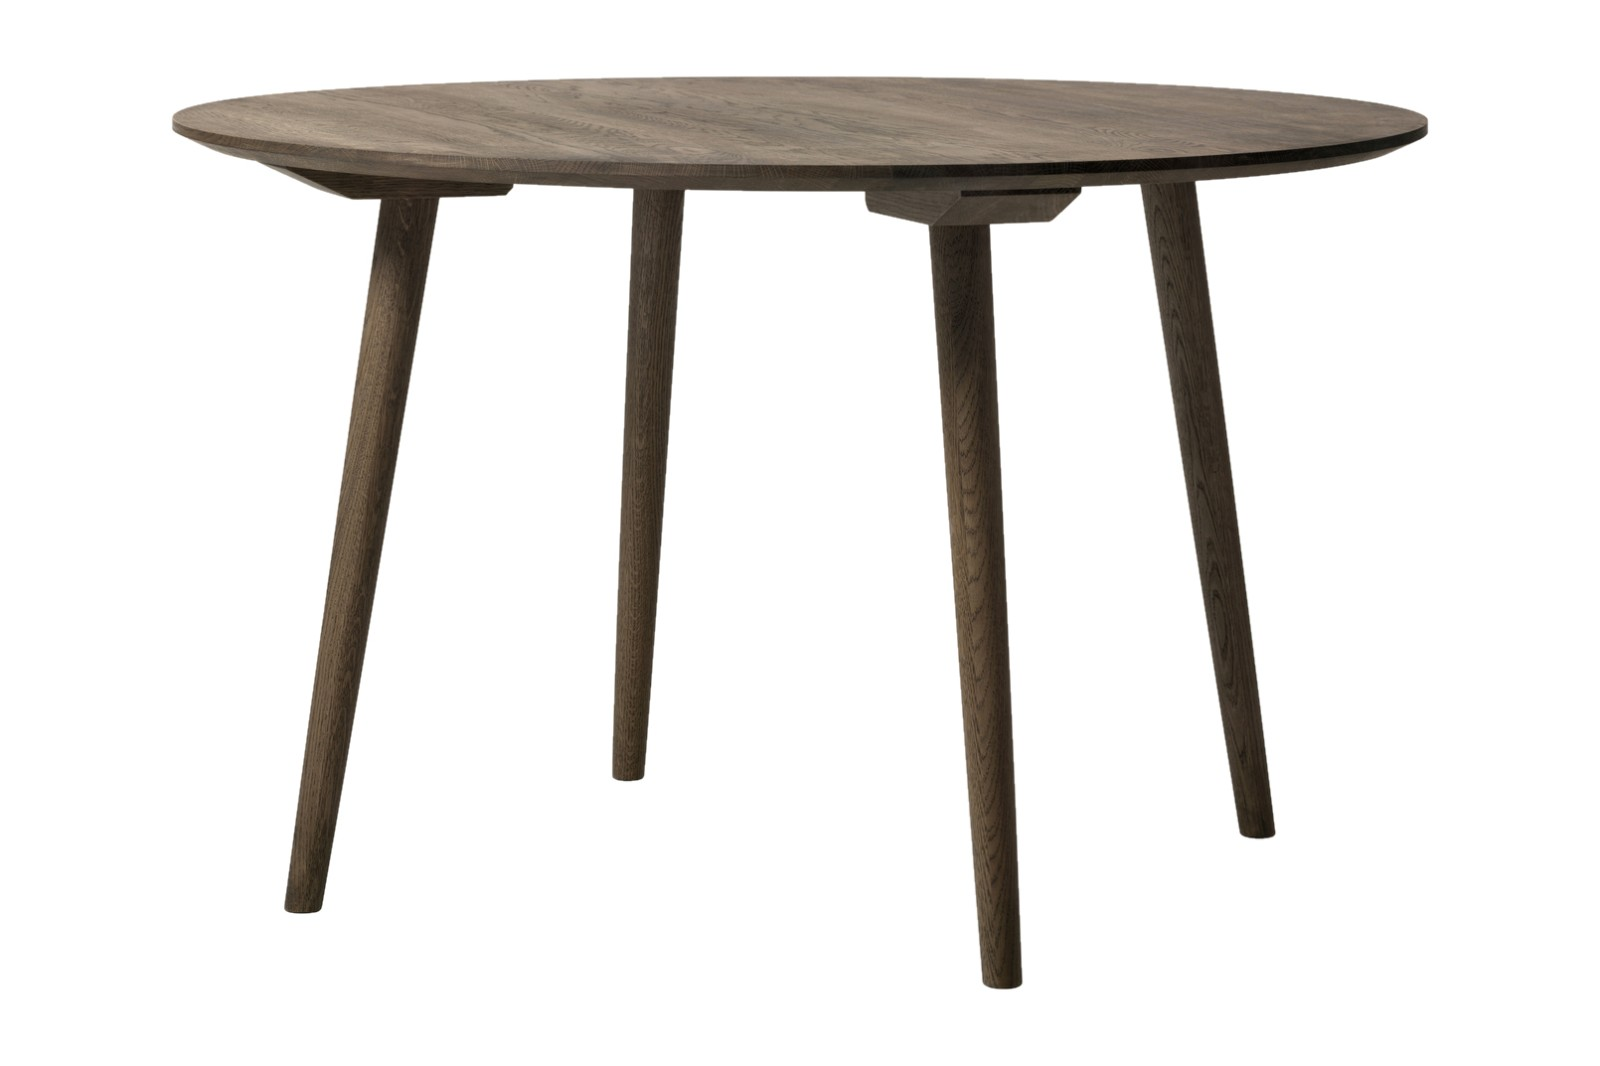 In Between SK4 Dining Table Smoked oiled oak